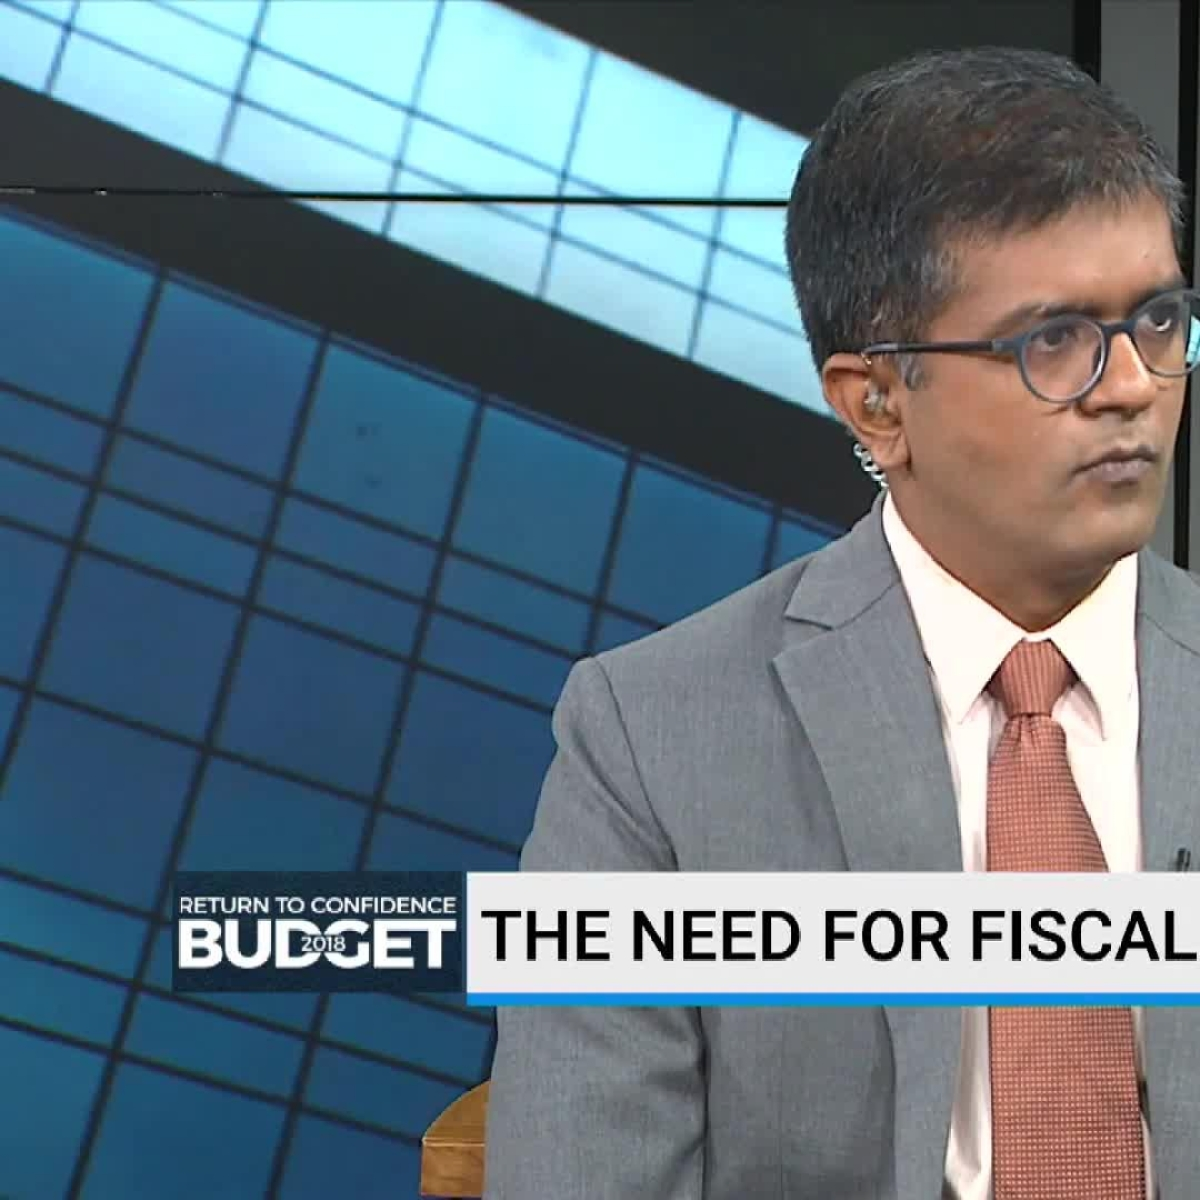 Expect Budget To Be Fiscally Conservative, Says Ambit's Mukherjea